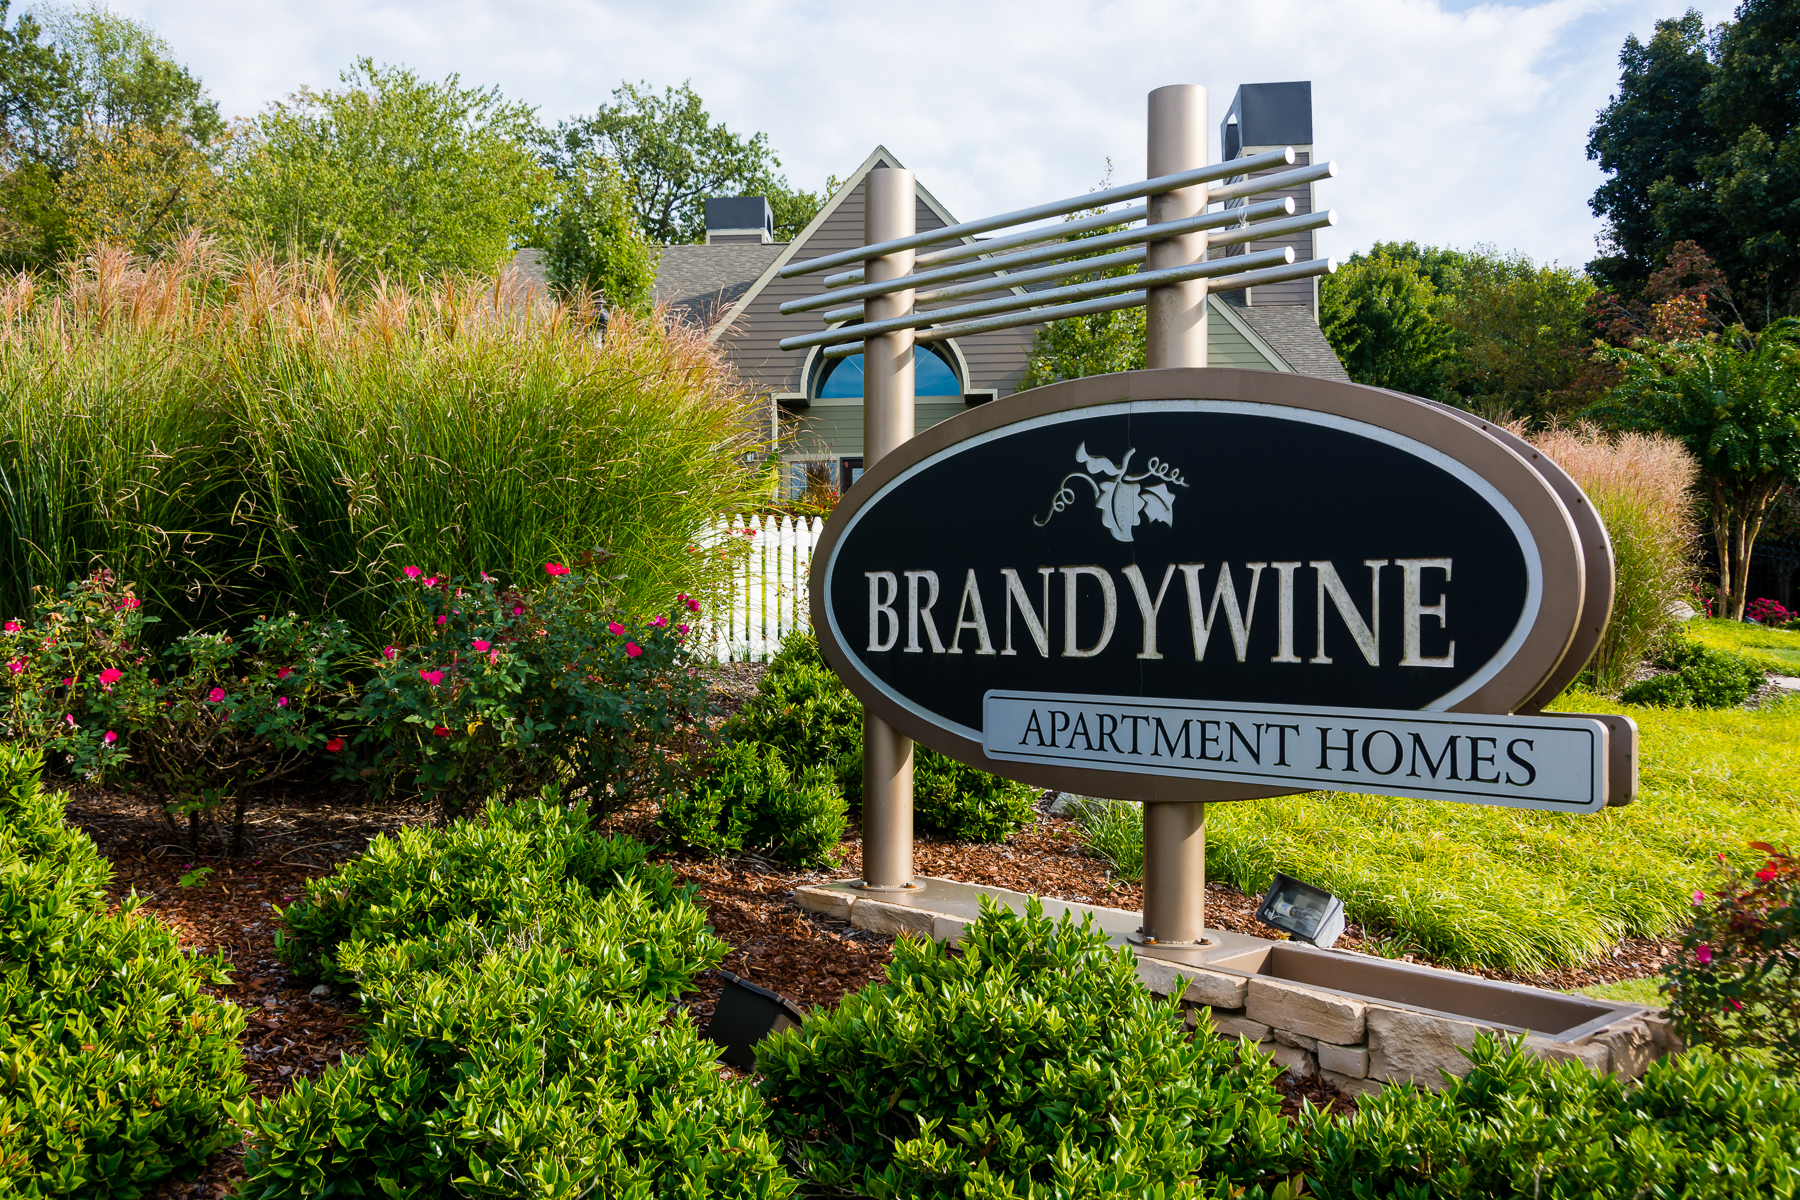 Brandywine | Apartments for Rent in Nashville, TN | Apartment Sign